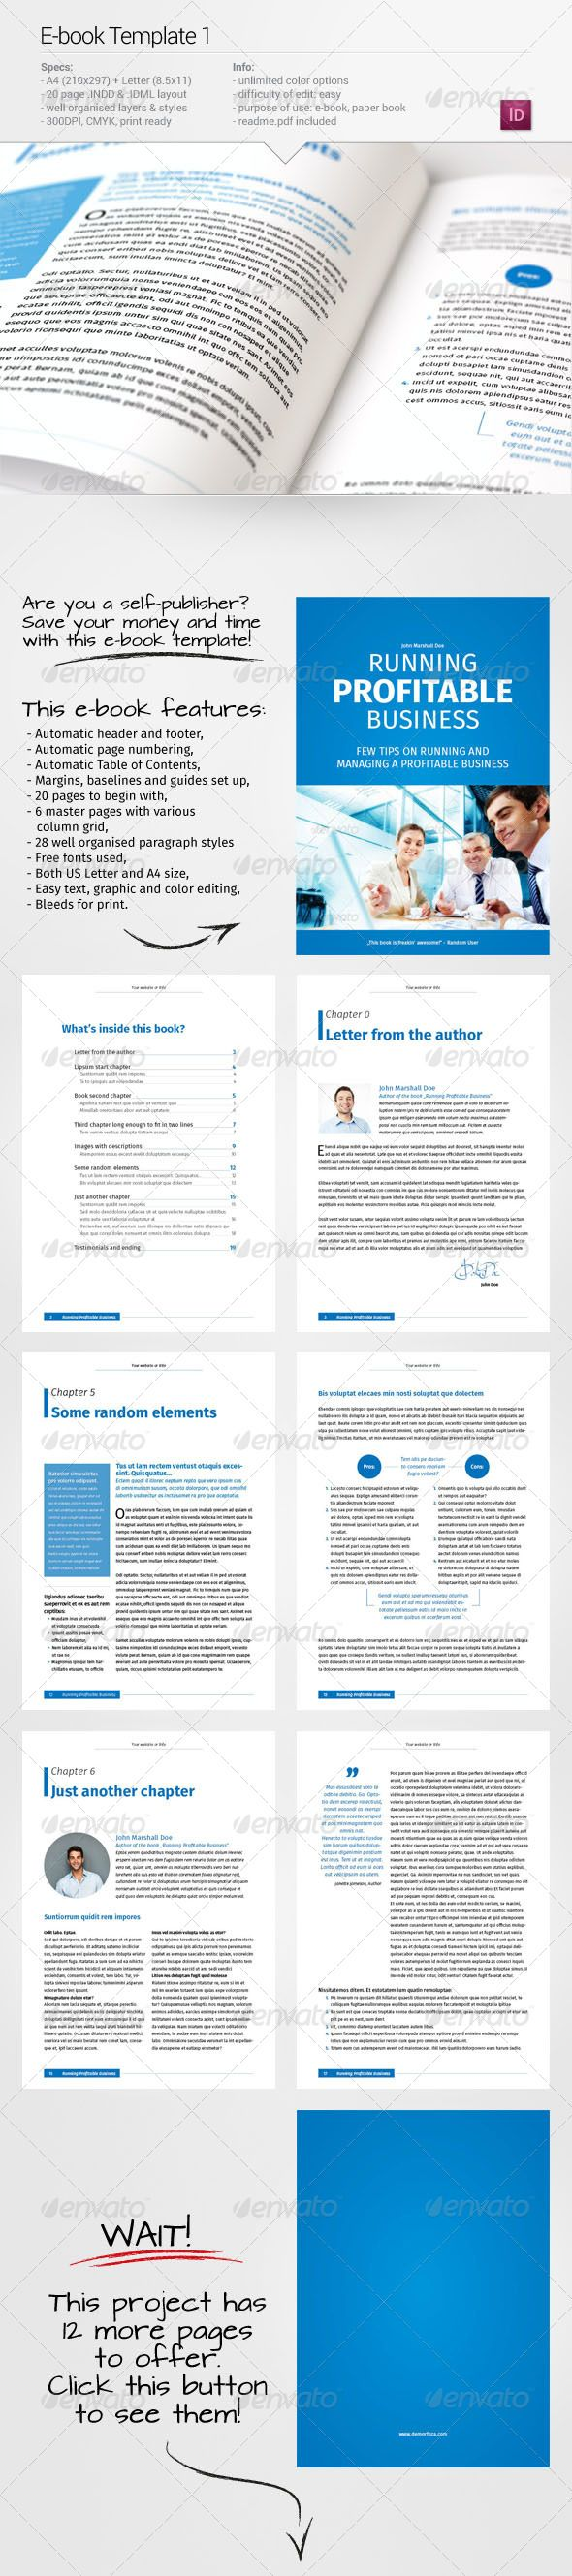 Fantastic 1 2 3 Nu Opgaver Kapitel Resume Big 1 Hexagon Template Square 1 Inch Button Template 1 Year Experience Resume Format For Net Developer Young 10 Minute Resume Builder Soft10 Off Coupon Template 15  Best Premium Ibook Author Templates   DzineFlip